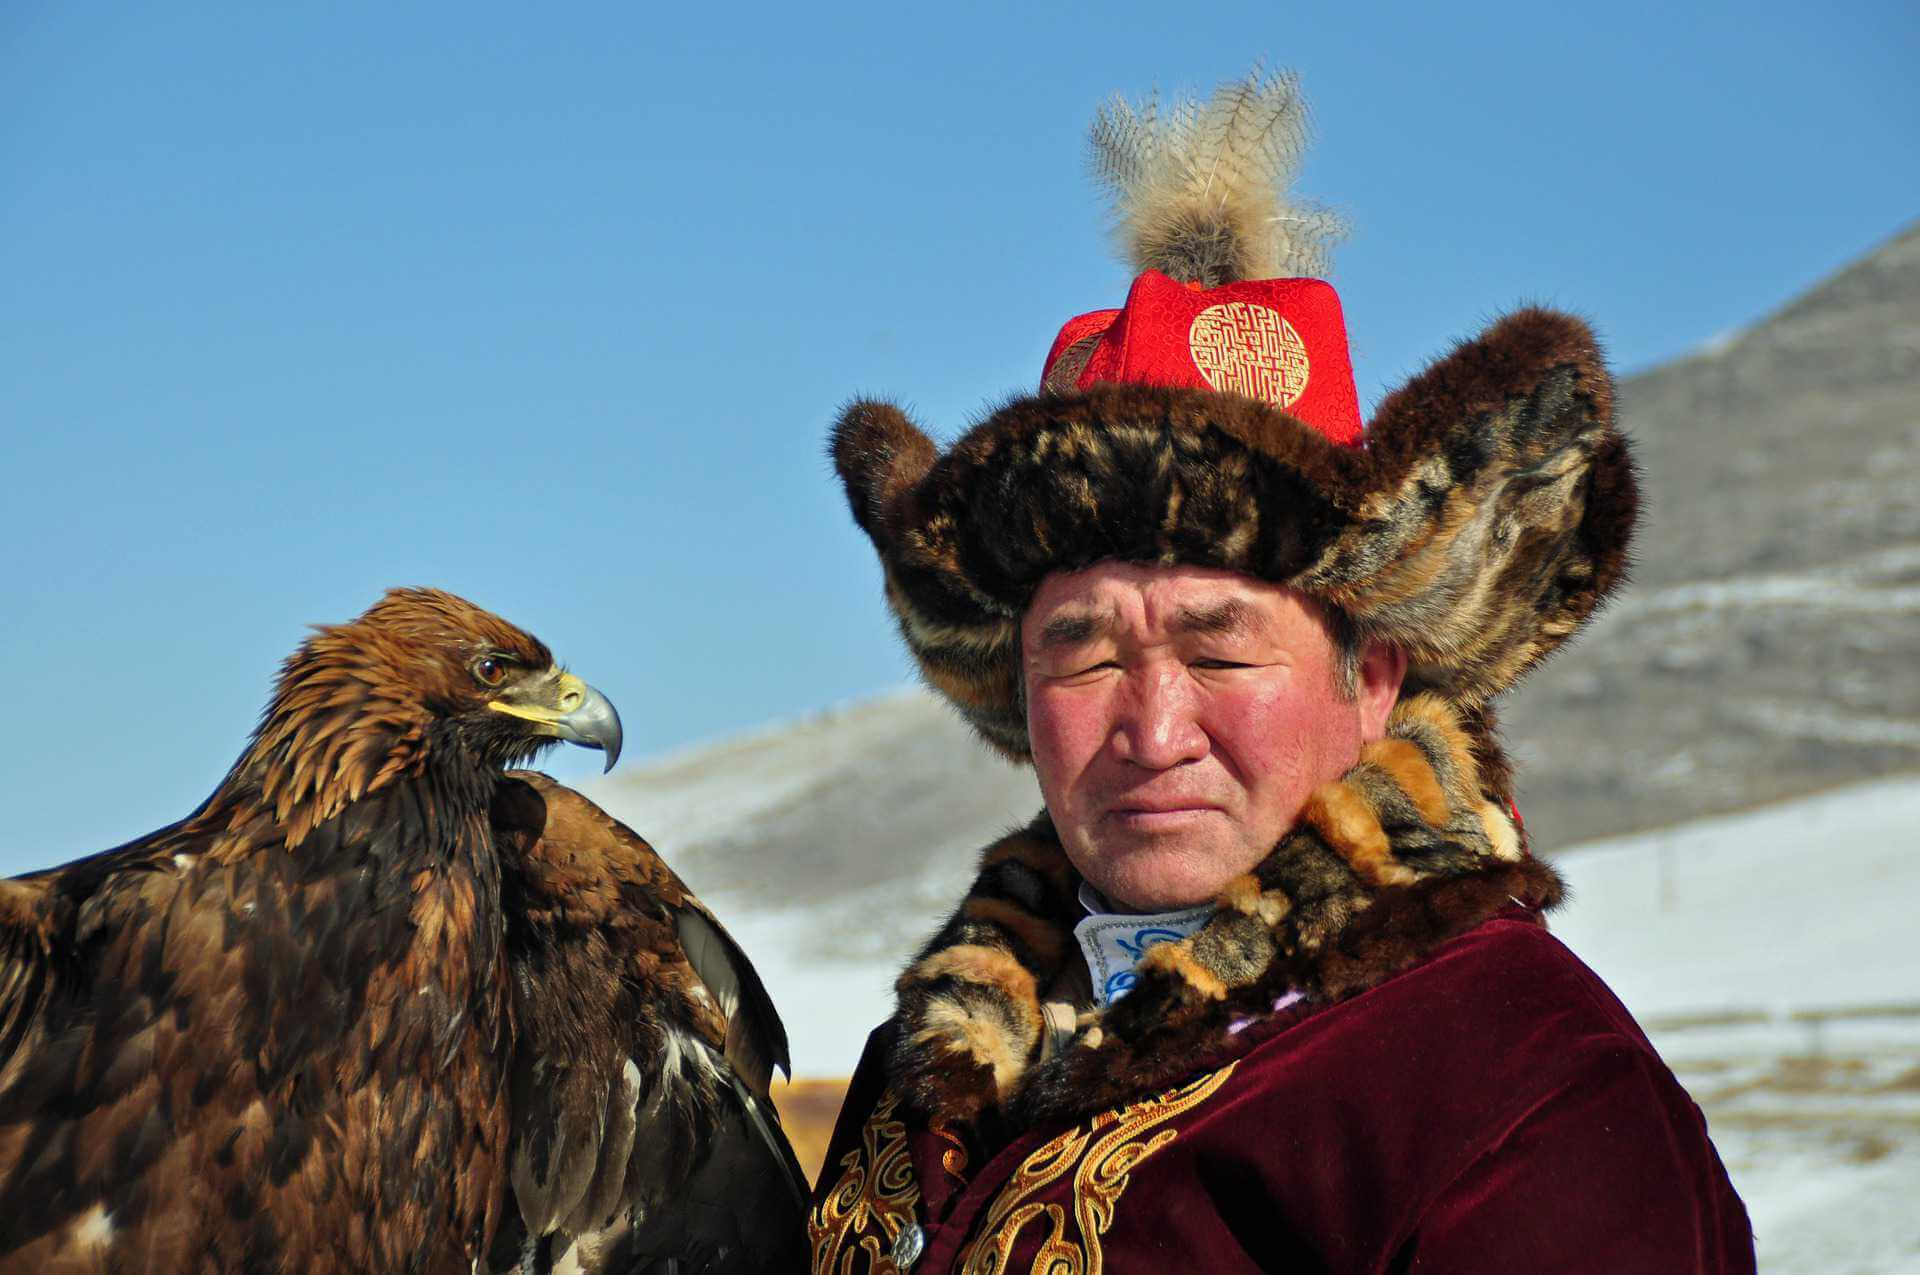 Asian falconer with eagle